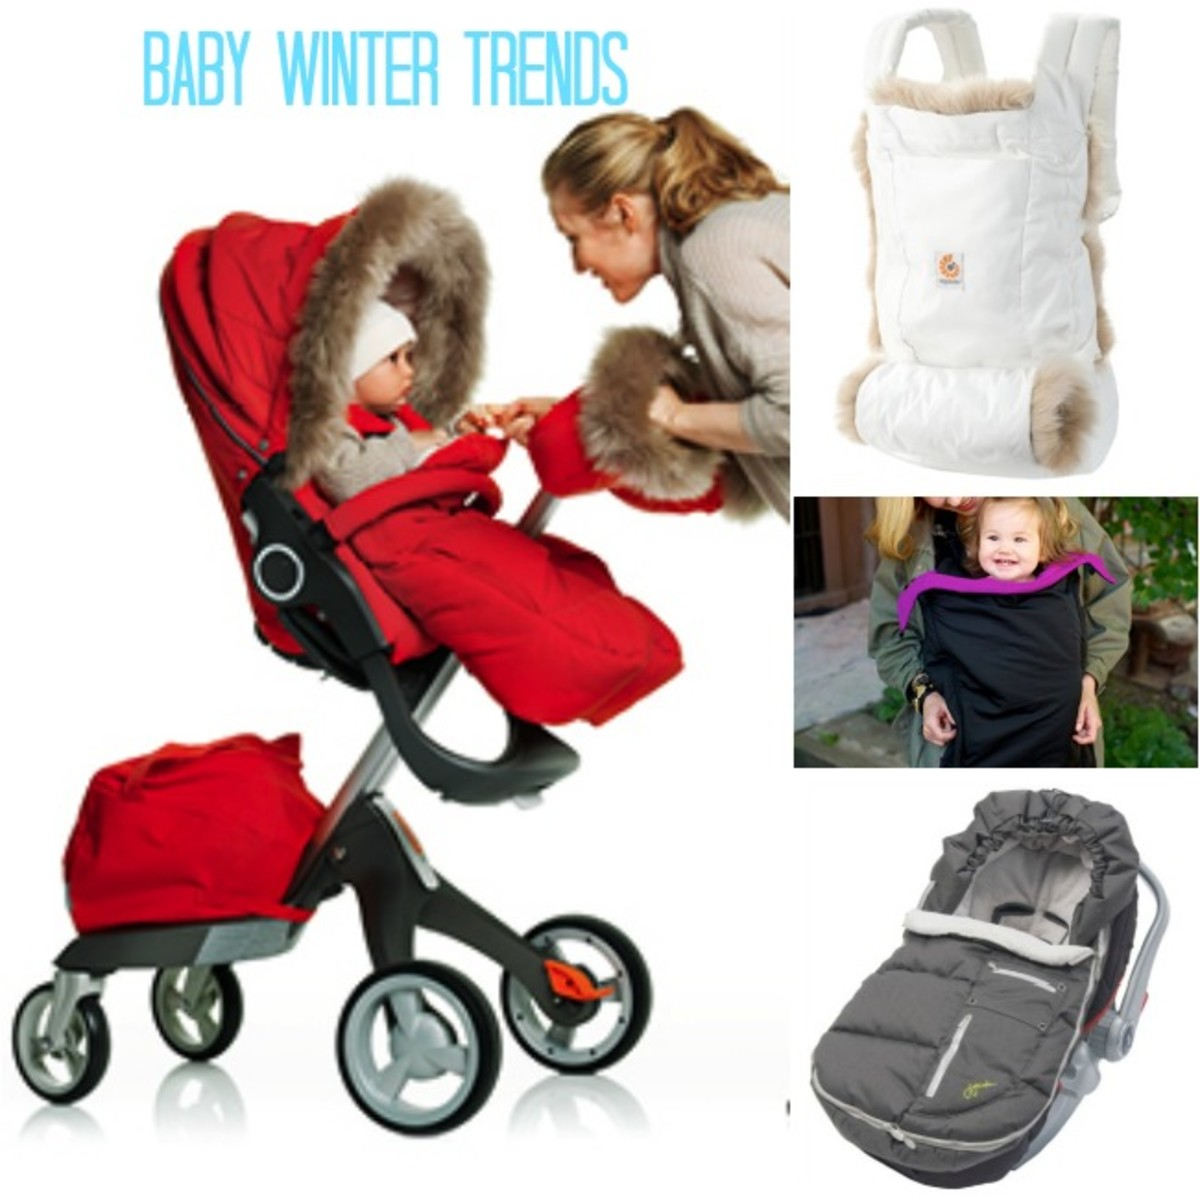 baby winter, stokke, jj cole bundleme, ergobaby, artic bundleme, hatch things, coldsnap